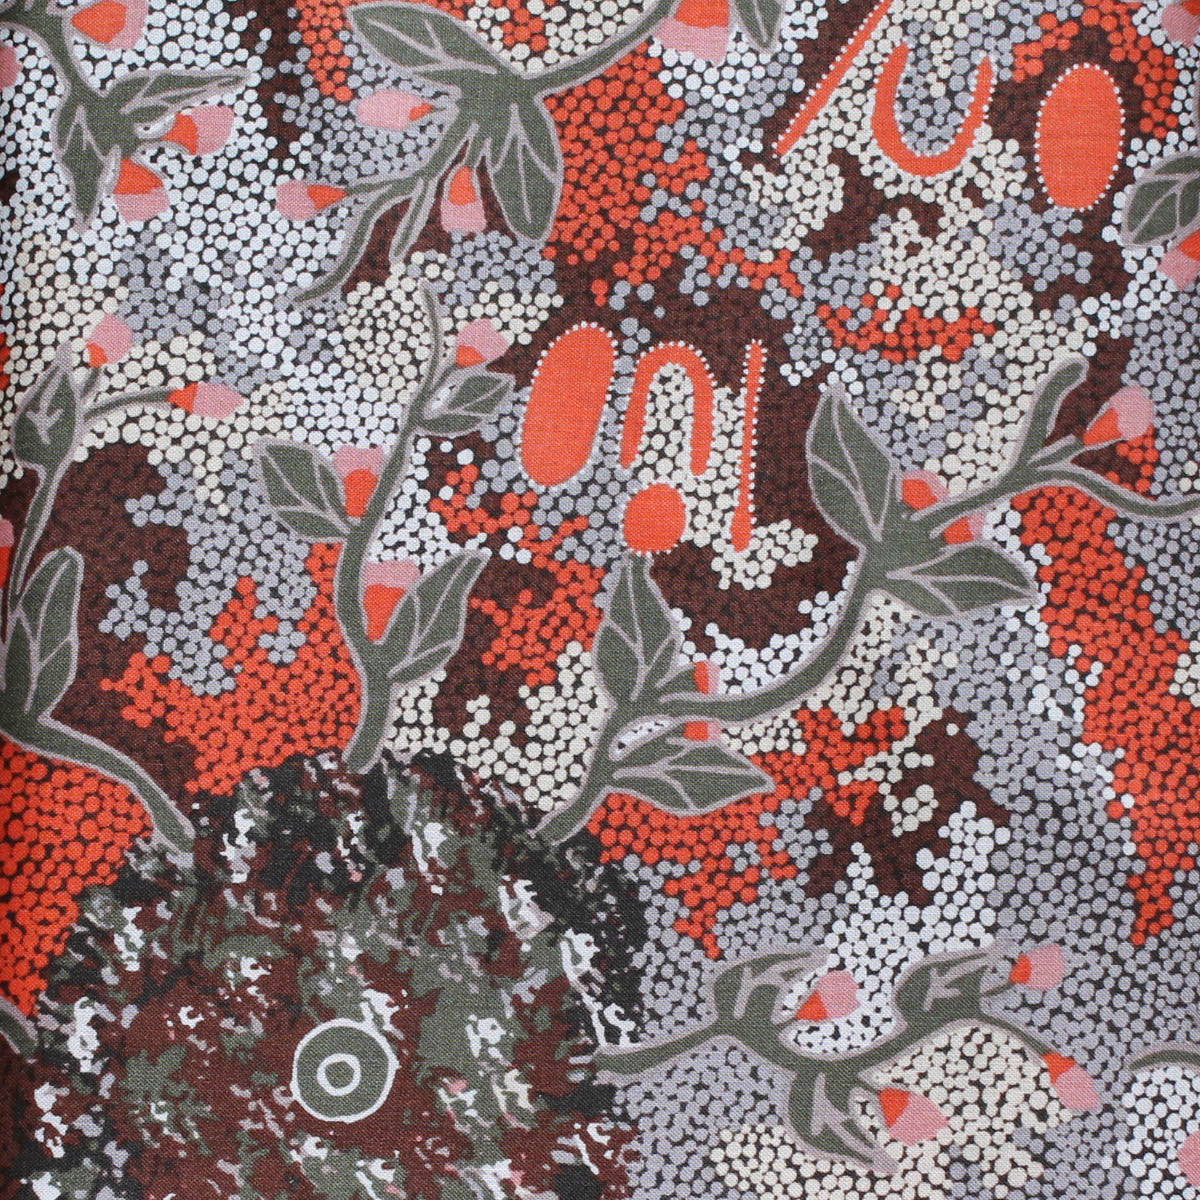 BUSH SWEET POTATO GREY by Aboriginal Artist AUDREY MARTIN NAPANANGKA